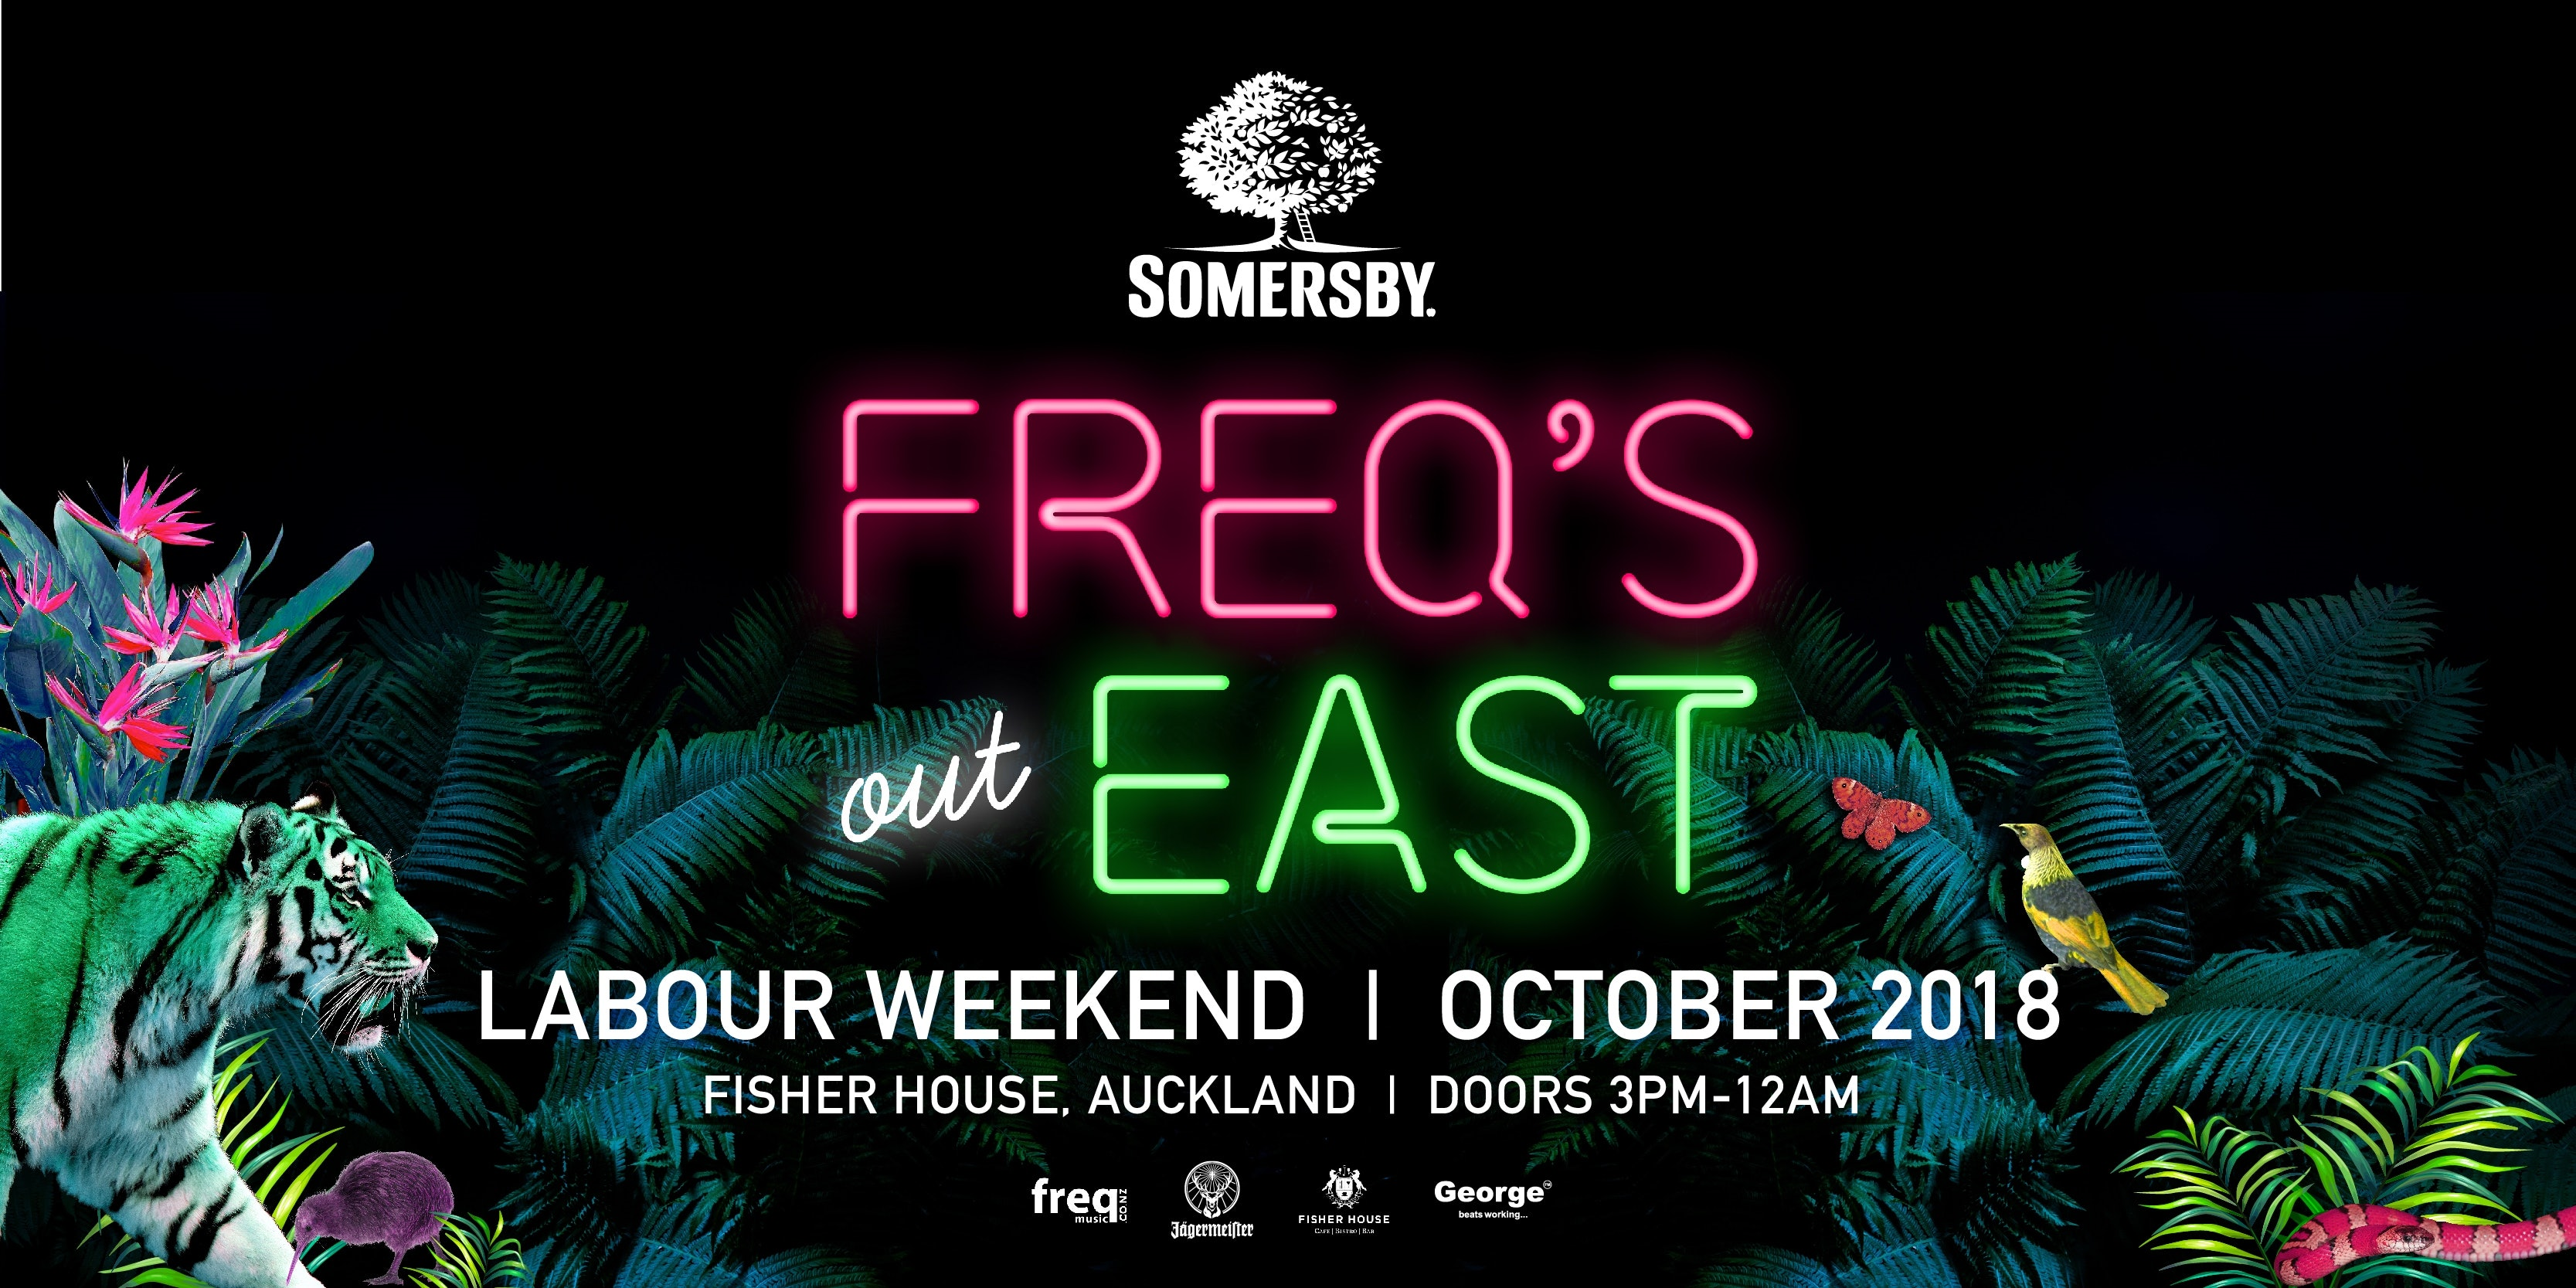 Somersby FREQ'S out EAST